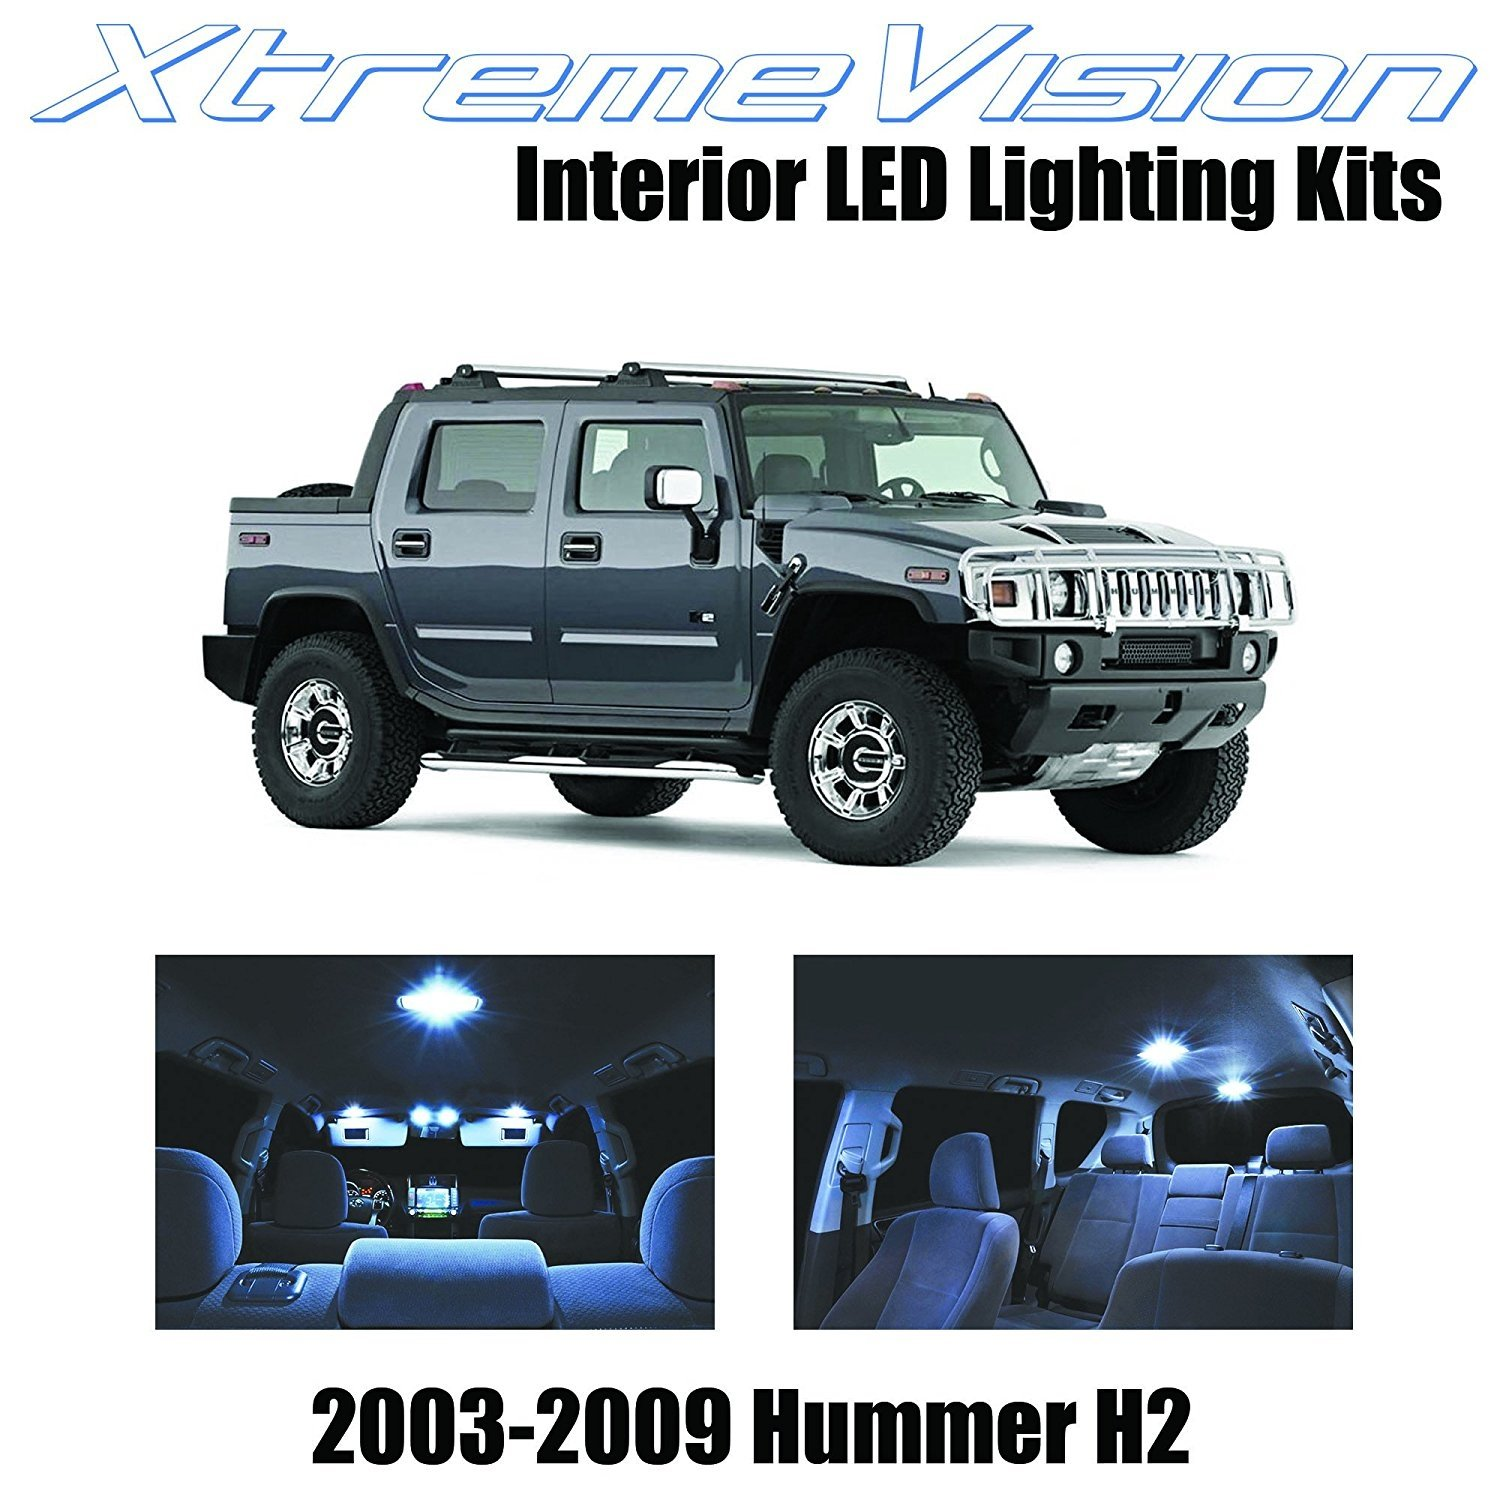 XtremeVision LED for Hummer H2 2003-2009 (15 Pieces) Cool White Premium Interior LED Kit Package +Installation Tool